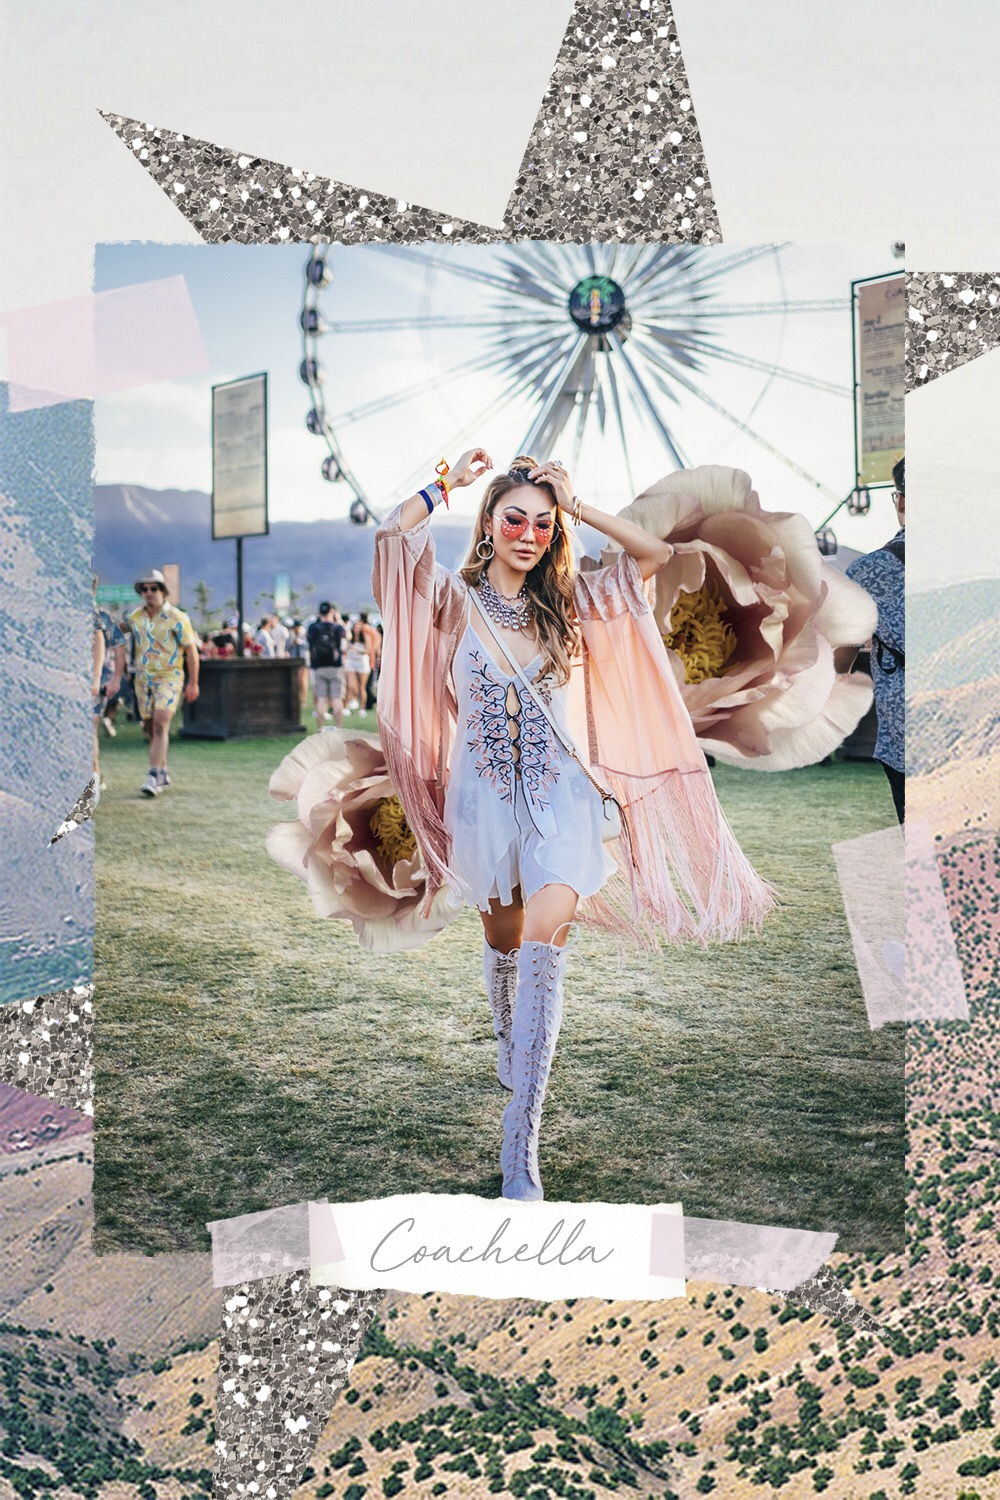 Cool Coachella Outfit Ideas - Coachella Collage, Fringe Kimono, Embroidered Dress // Notjessfashion.com